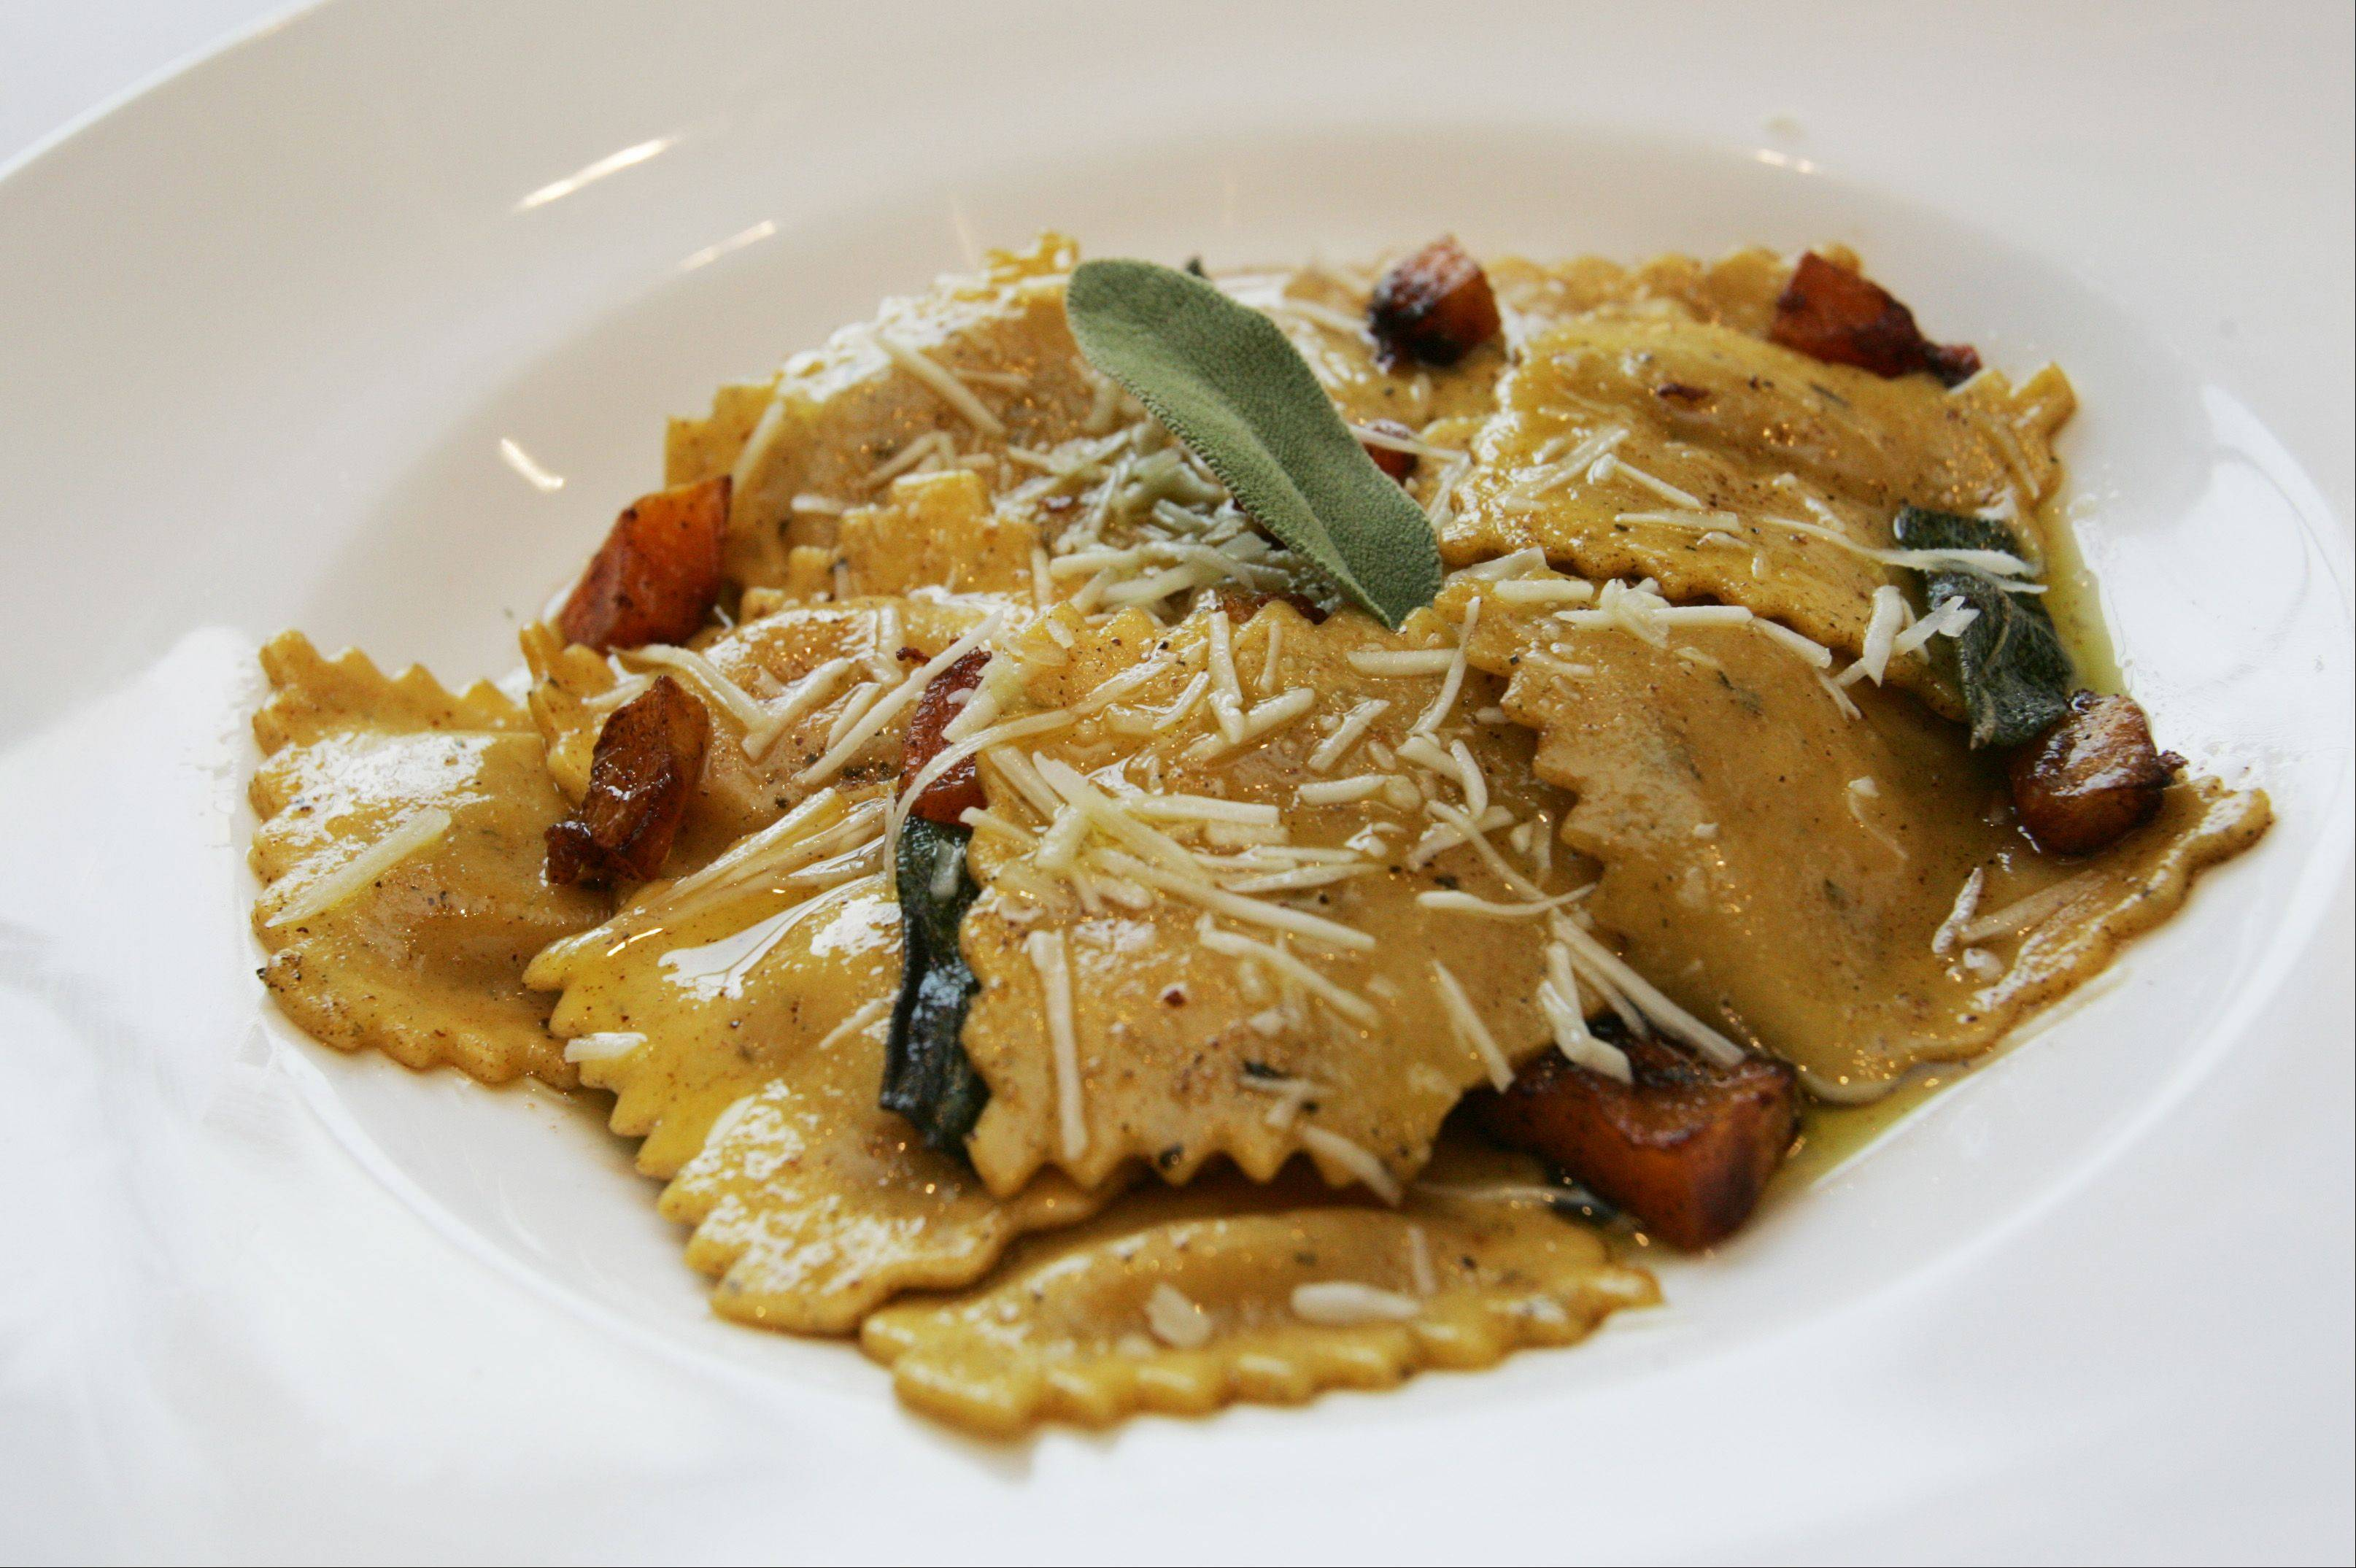 Butternut squash puree fills these homemade raviolis that are served with a sage-infused brown butter sauce.